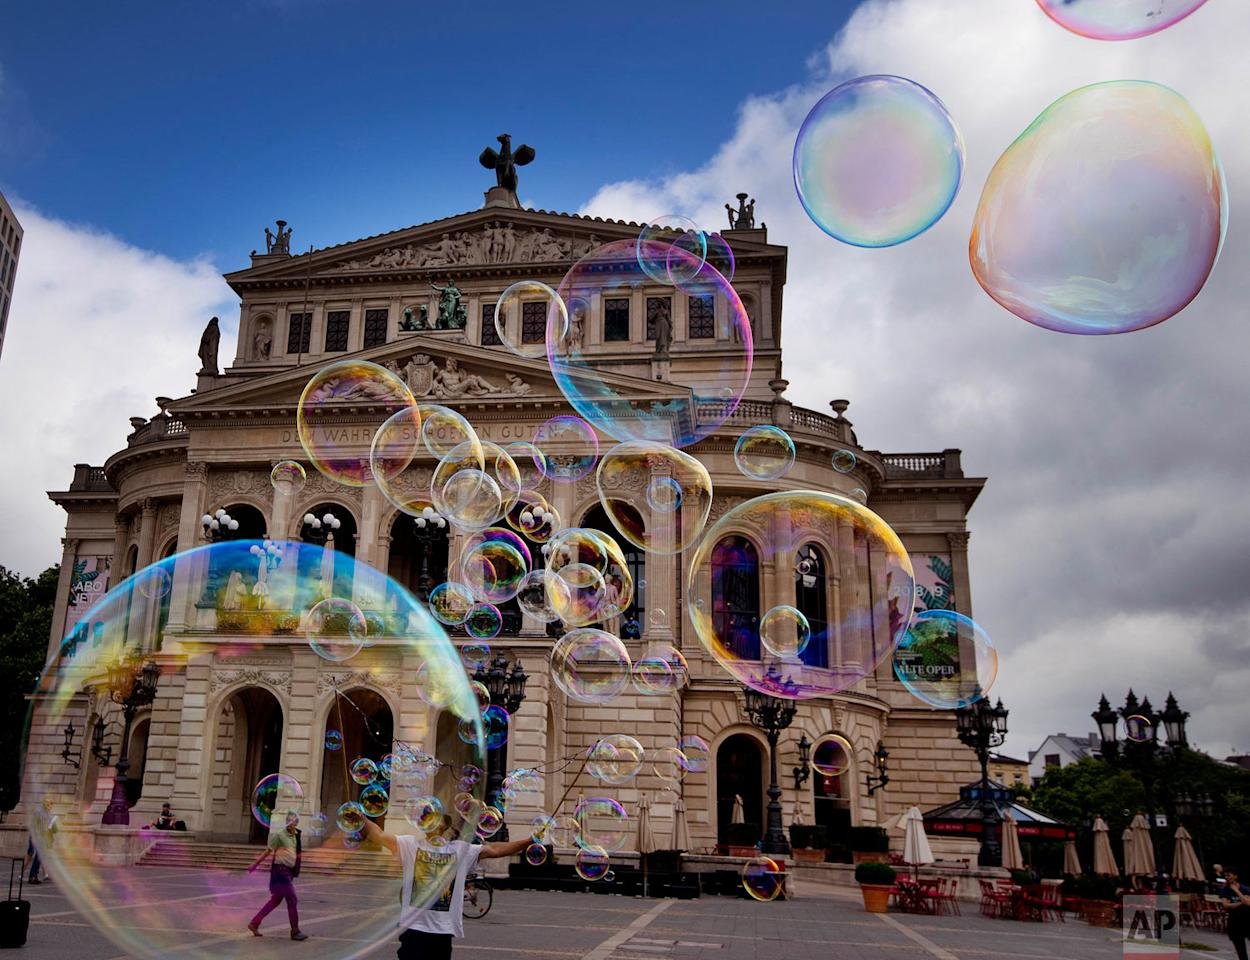 <p>A bubble artist performs with soap bubbles in front of the Old Opera in Frankfurt, Germany. (AP Photo/Michael Probst) </p>